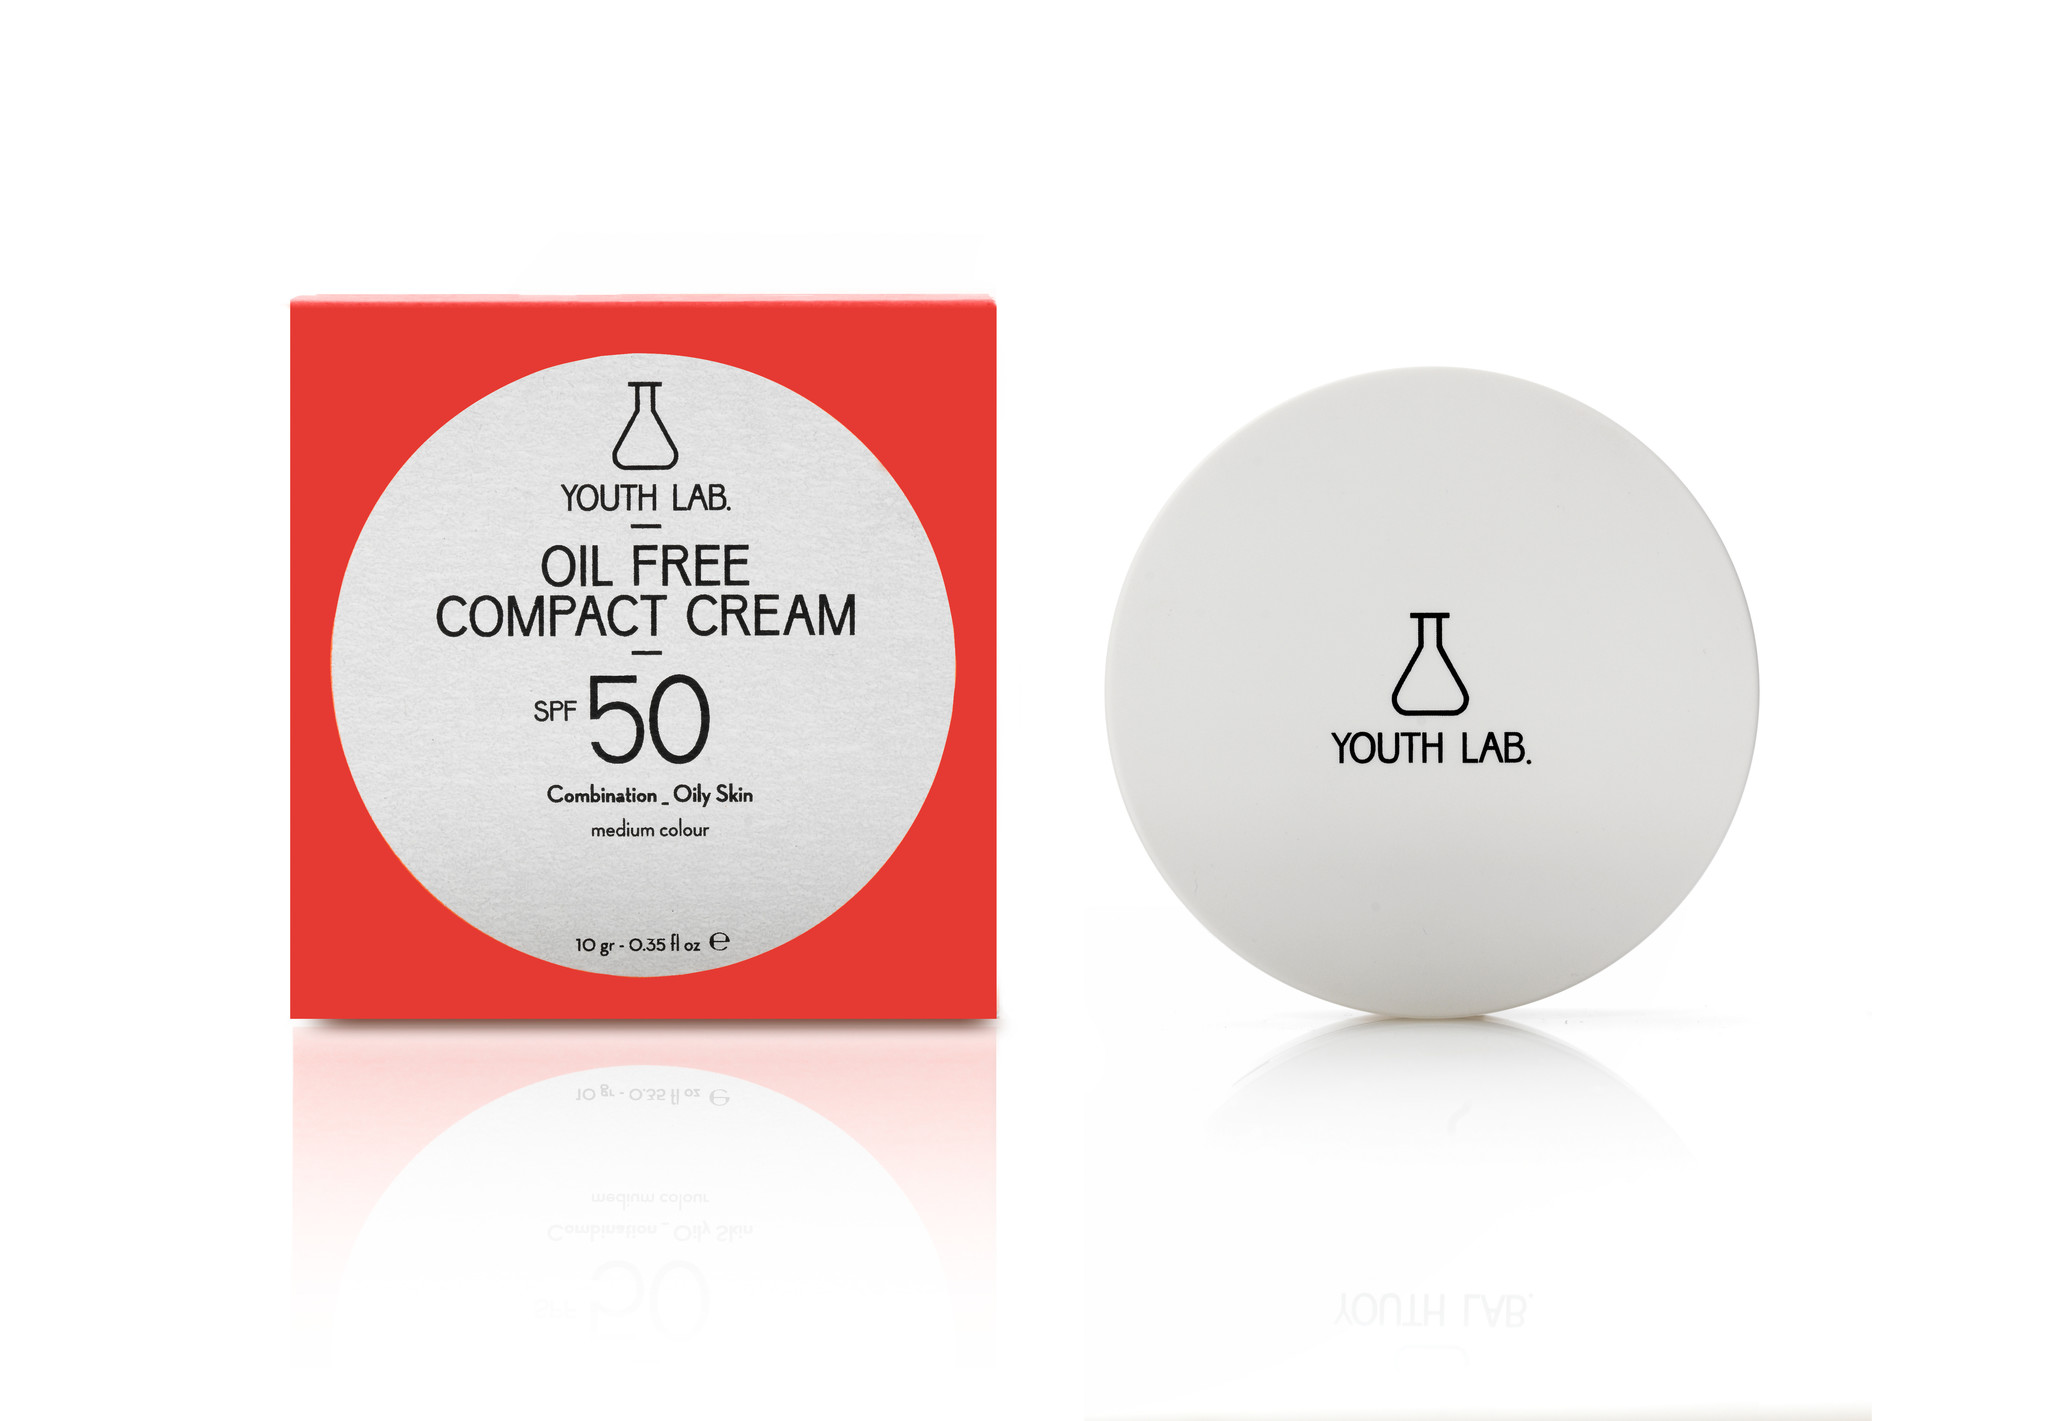 Youth Lab Youth lab Oil free compact cream spf 50 Medium color 10g